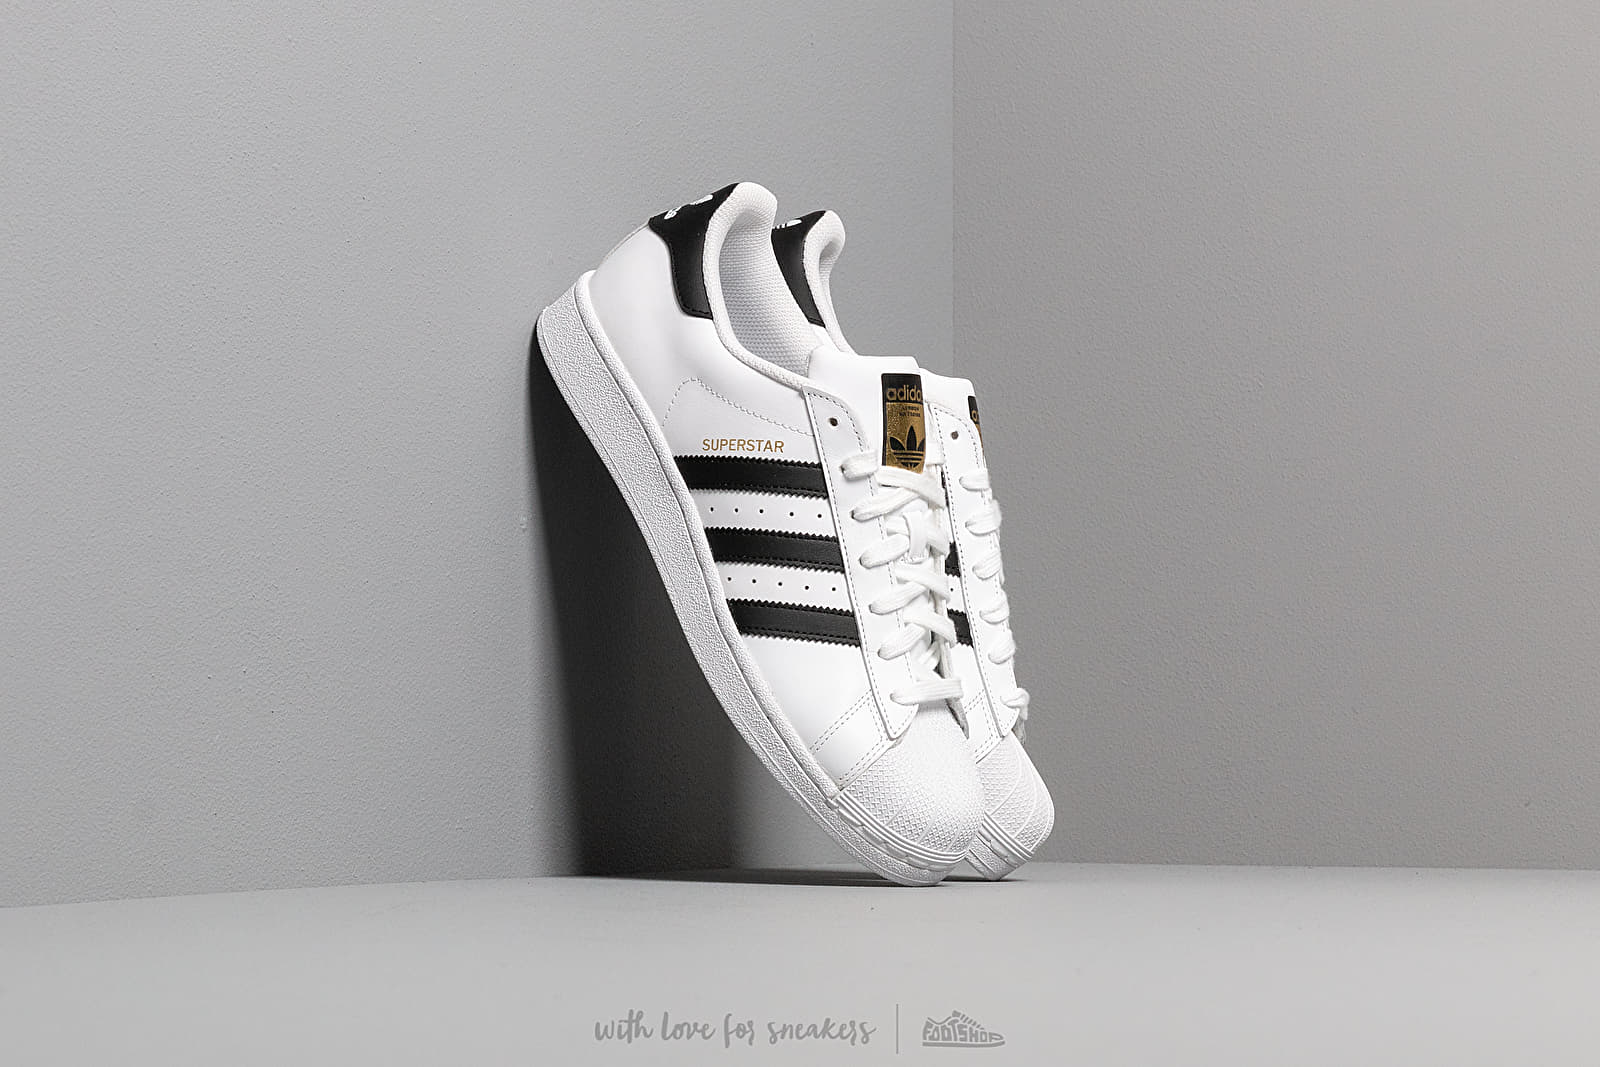 Ανδρικά παπούτσια adidas Superstar Ftw White/ Core Black/ Ftw White